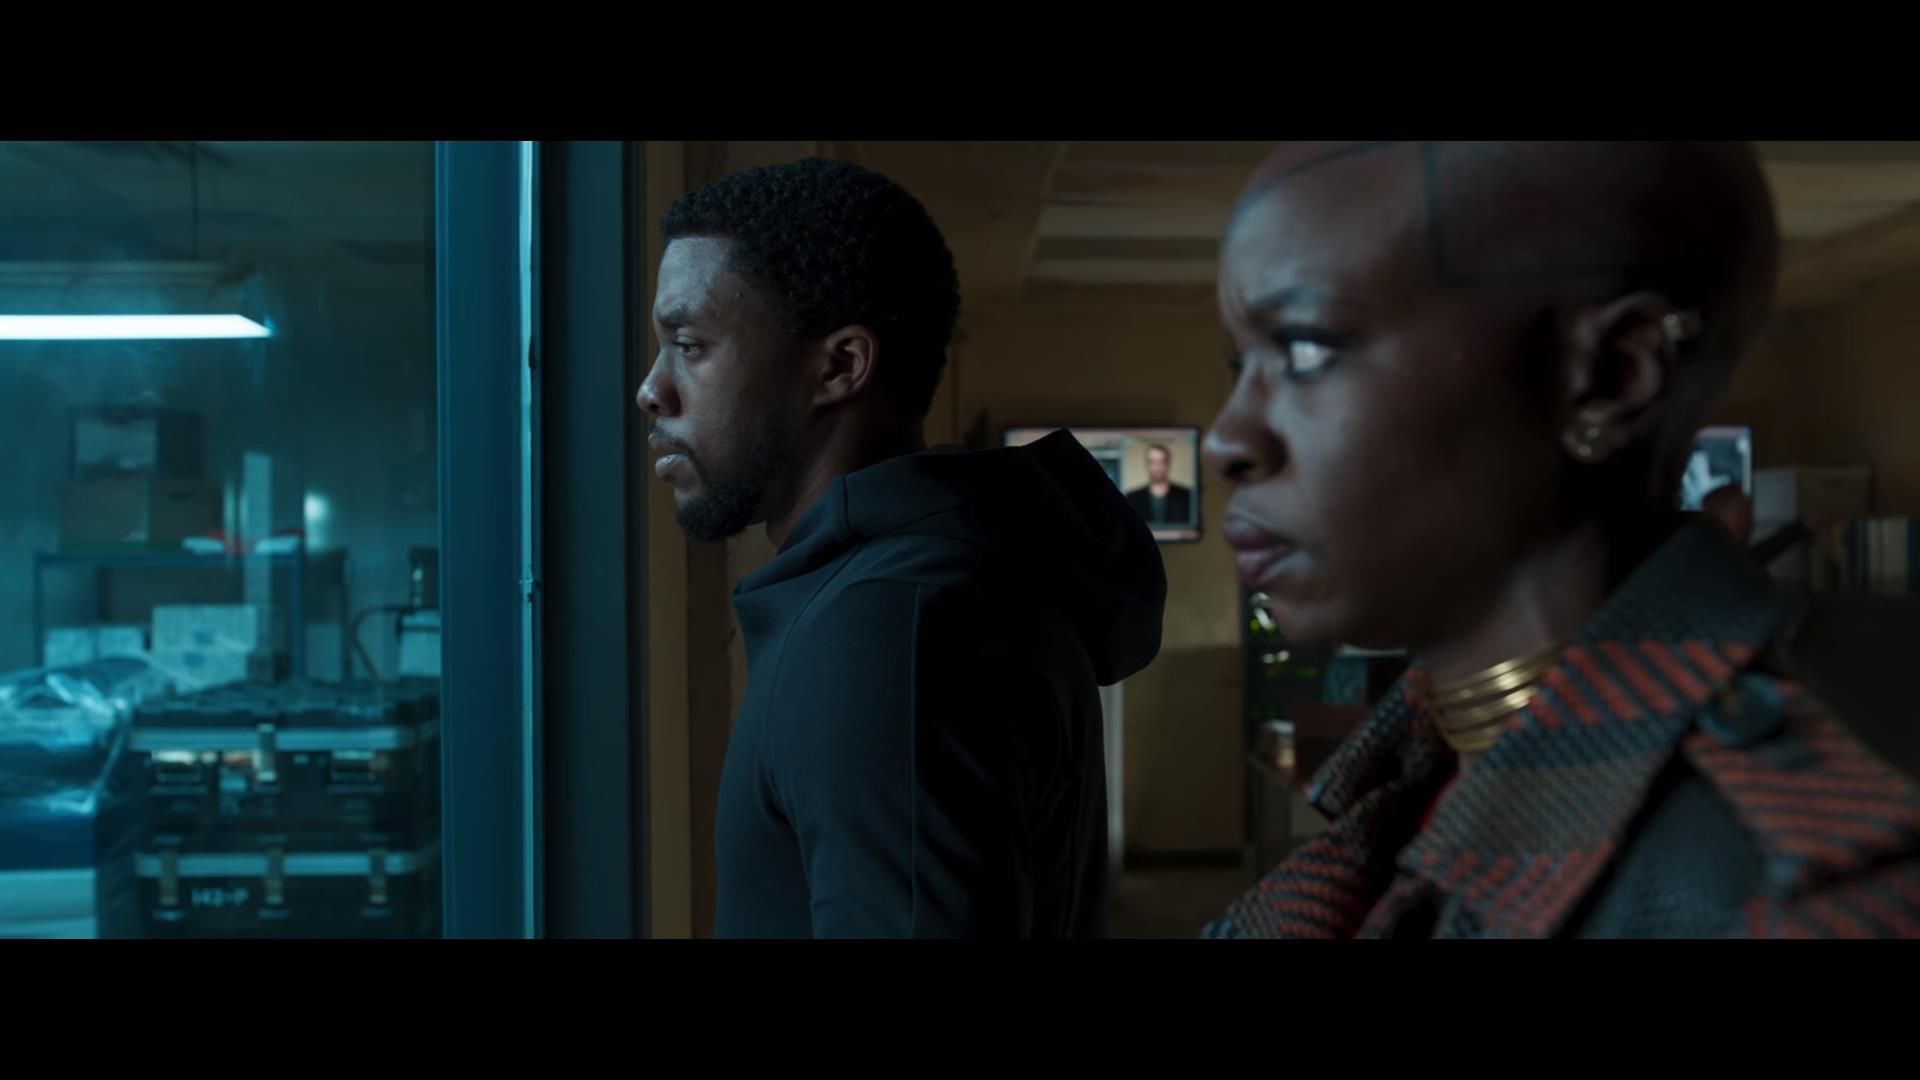 Chadwick Boseman and Danai Gurira in Black Panther